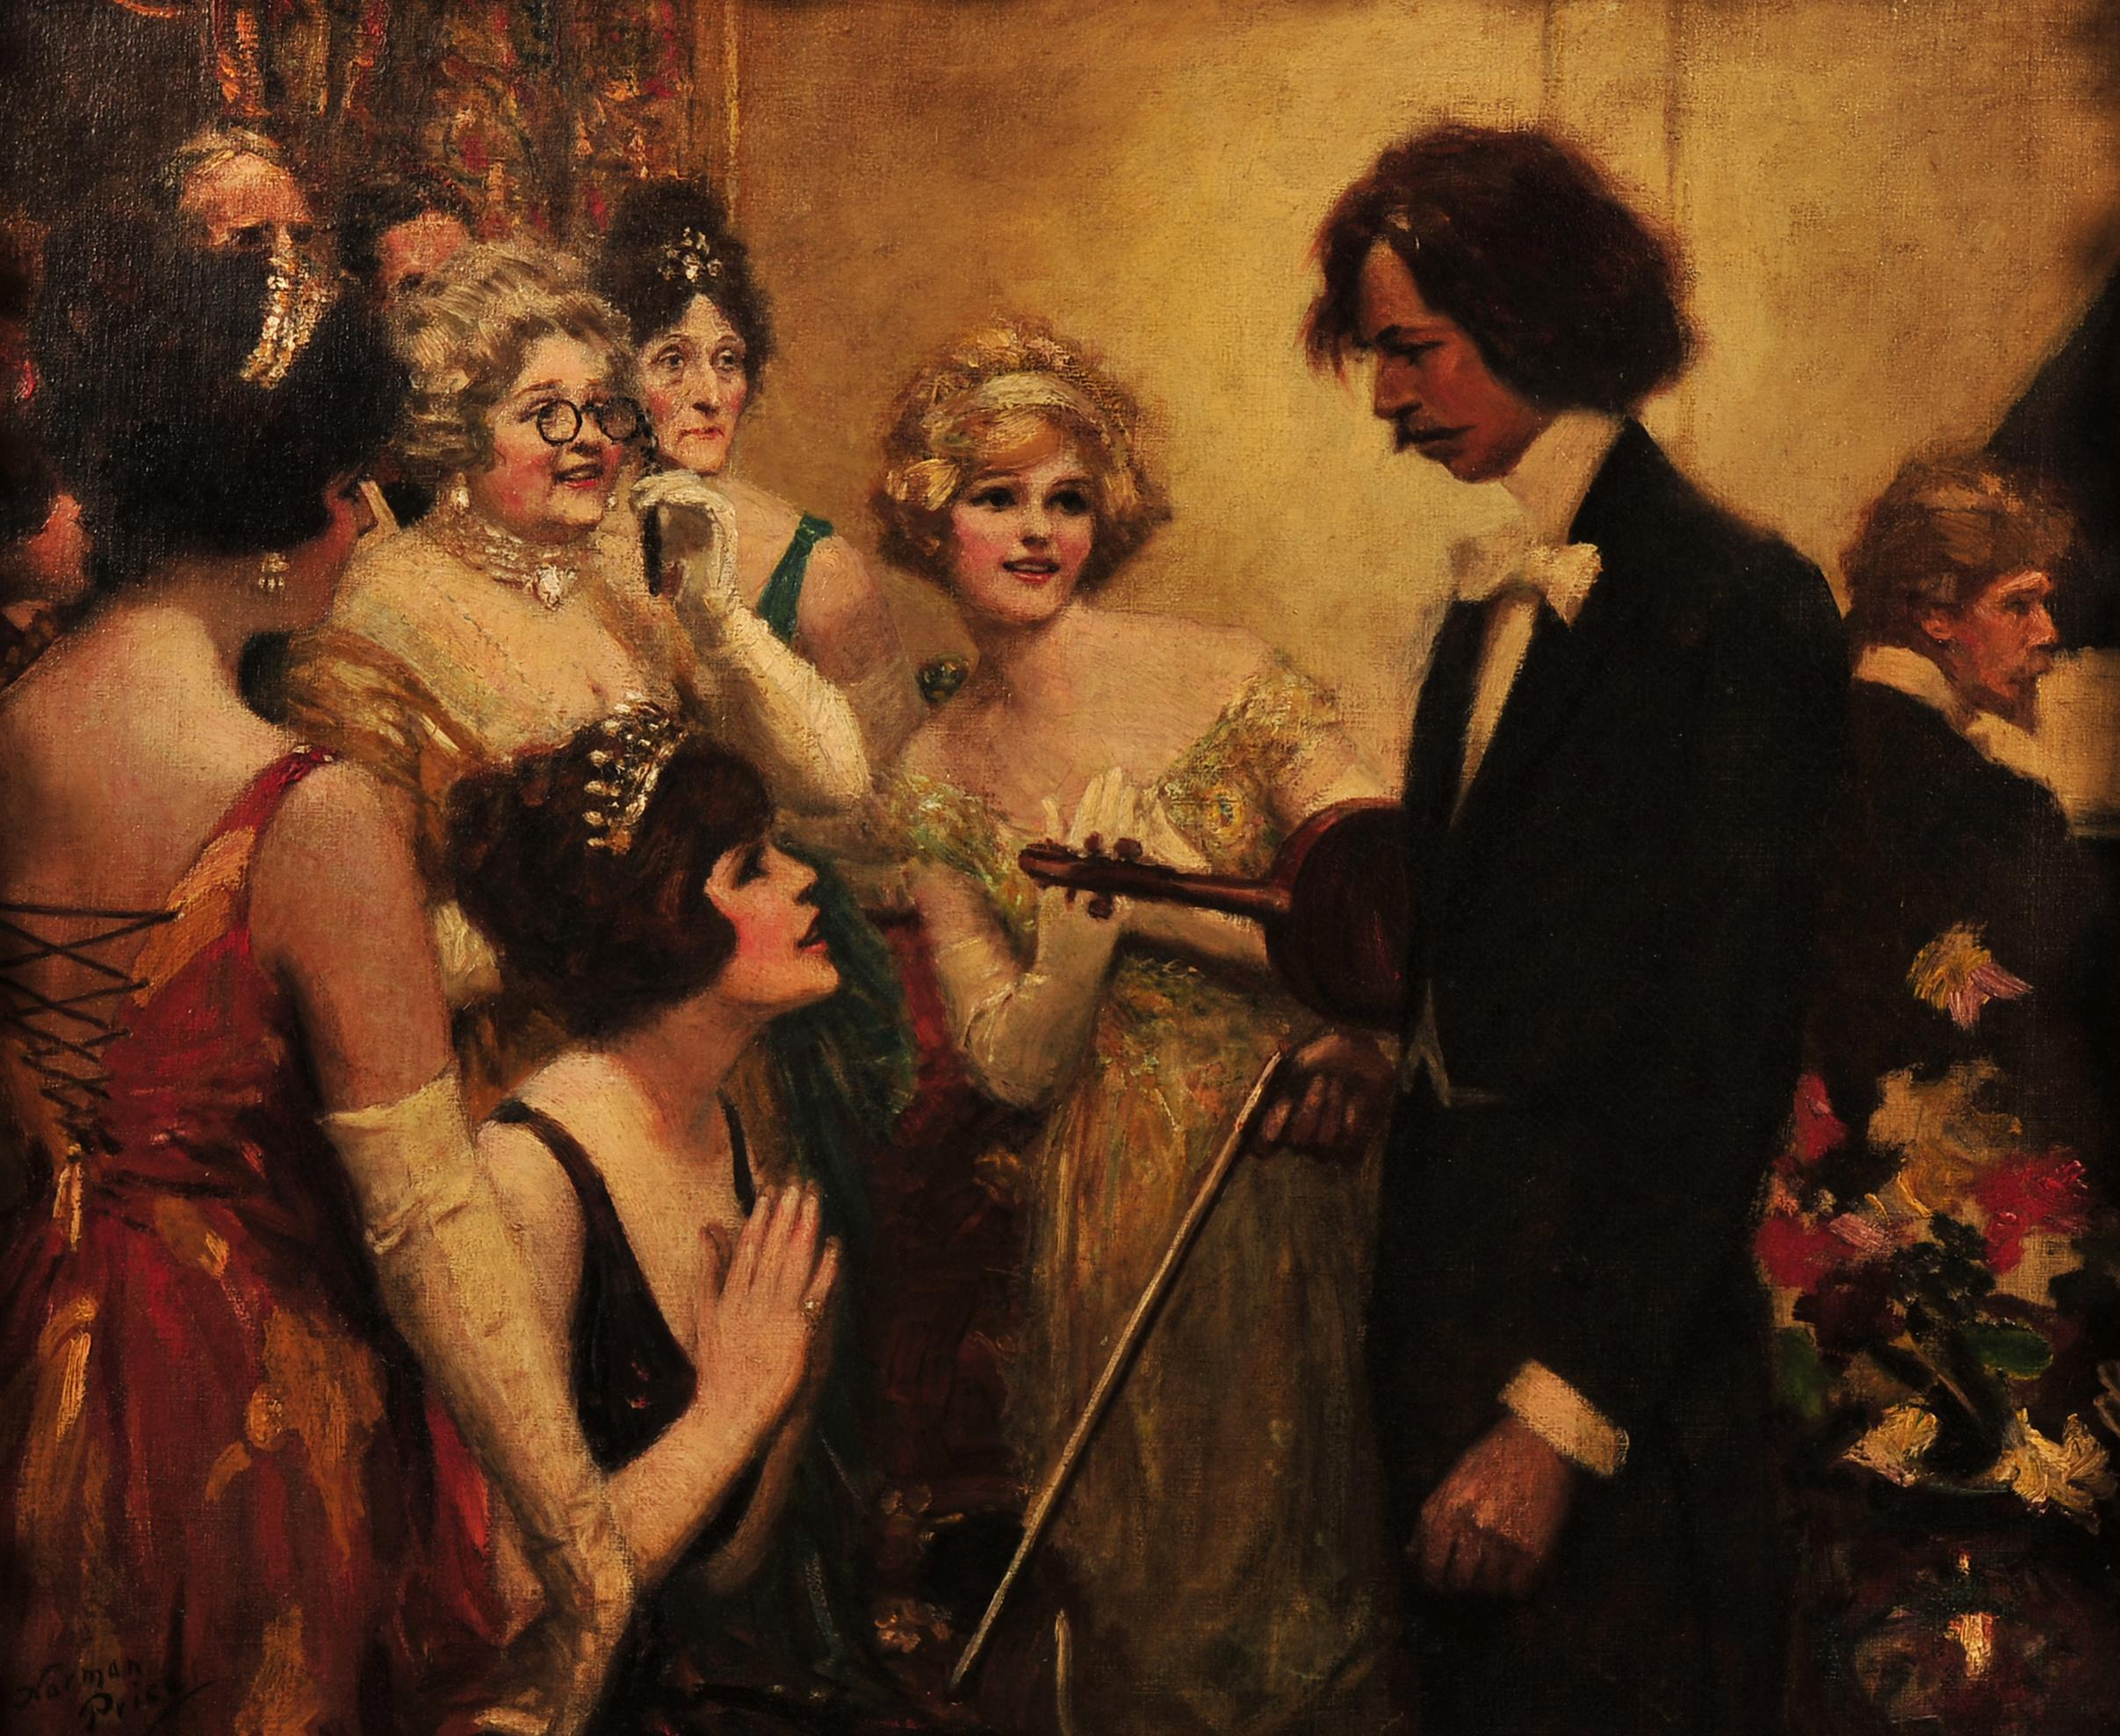 Violinist Admired by Women at Party